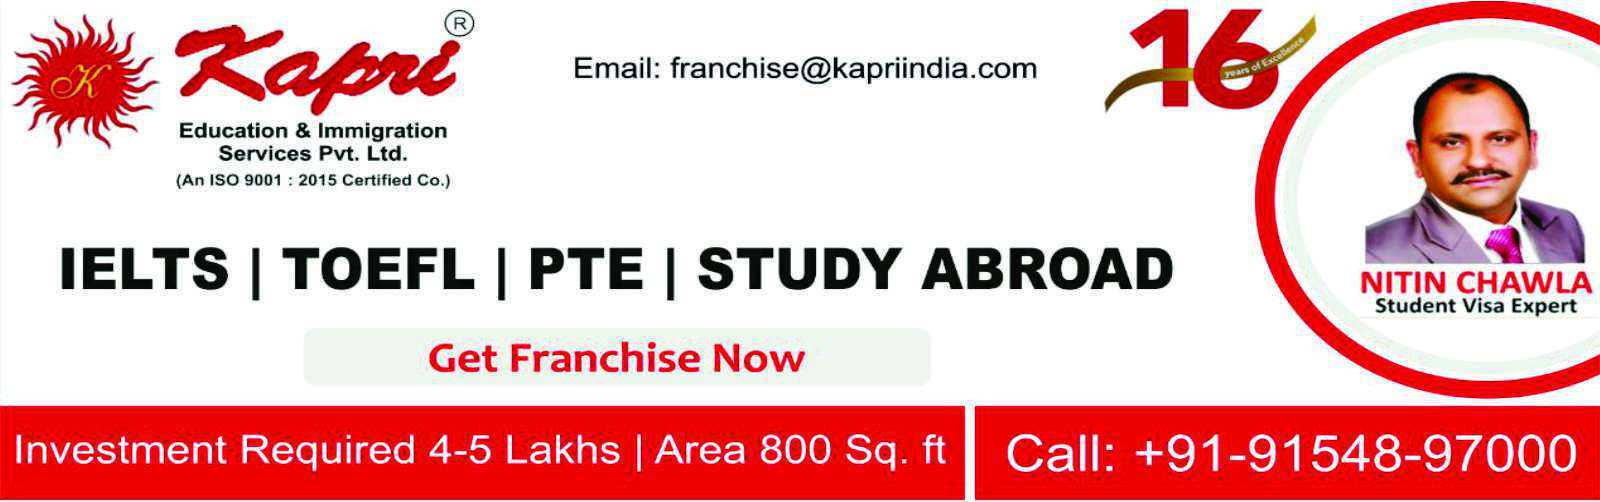 admin/photos/Kapri Education & Immigration Services Pvt.Ltd